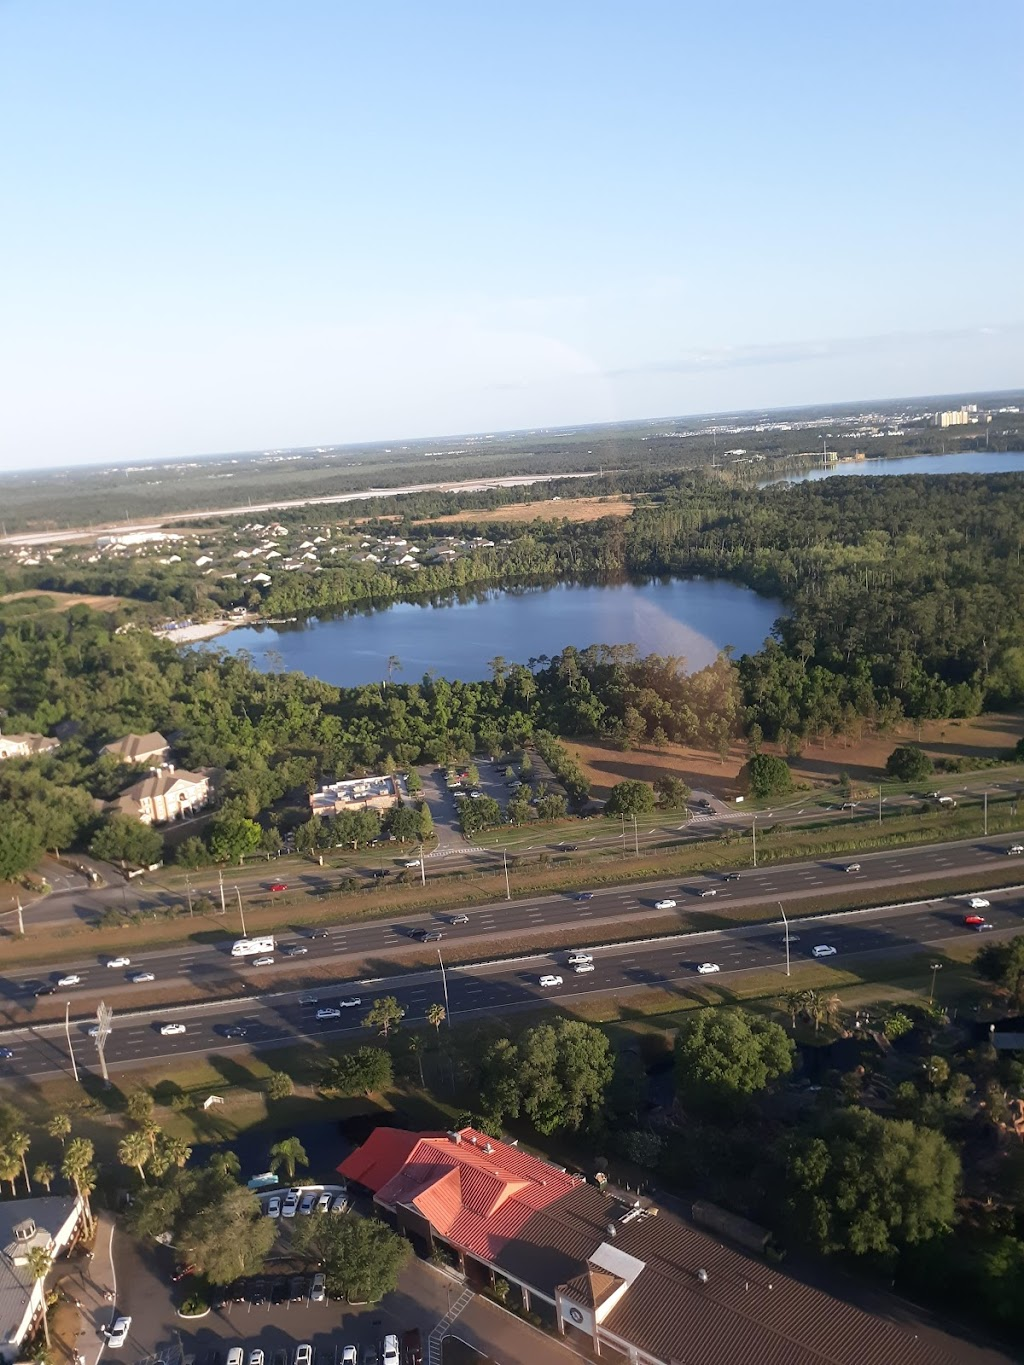 Air Force Fun Helicopter Tours - airport  | Photo 8 of 10 | Address: 12211 Regency Village Dr #13, Orlando, FL 32821, USA | Phone: (407) 842-1446